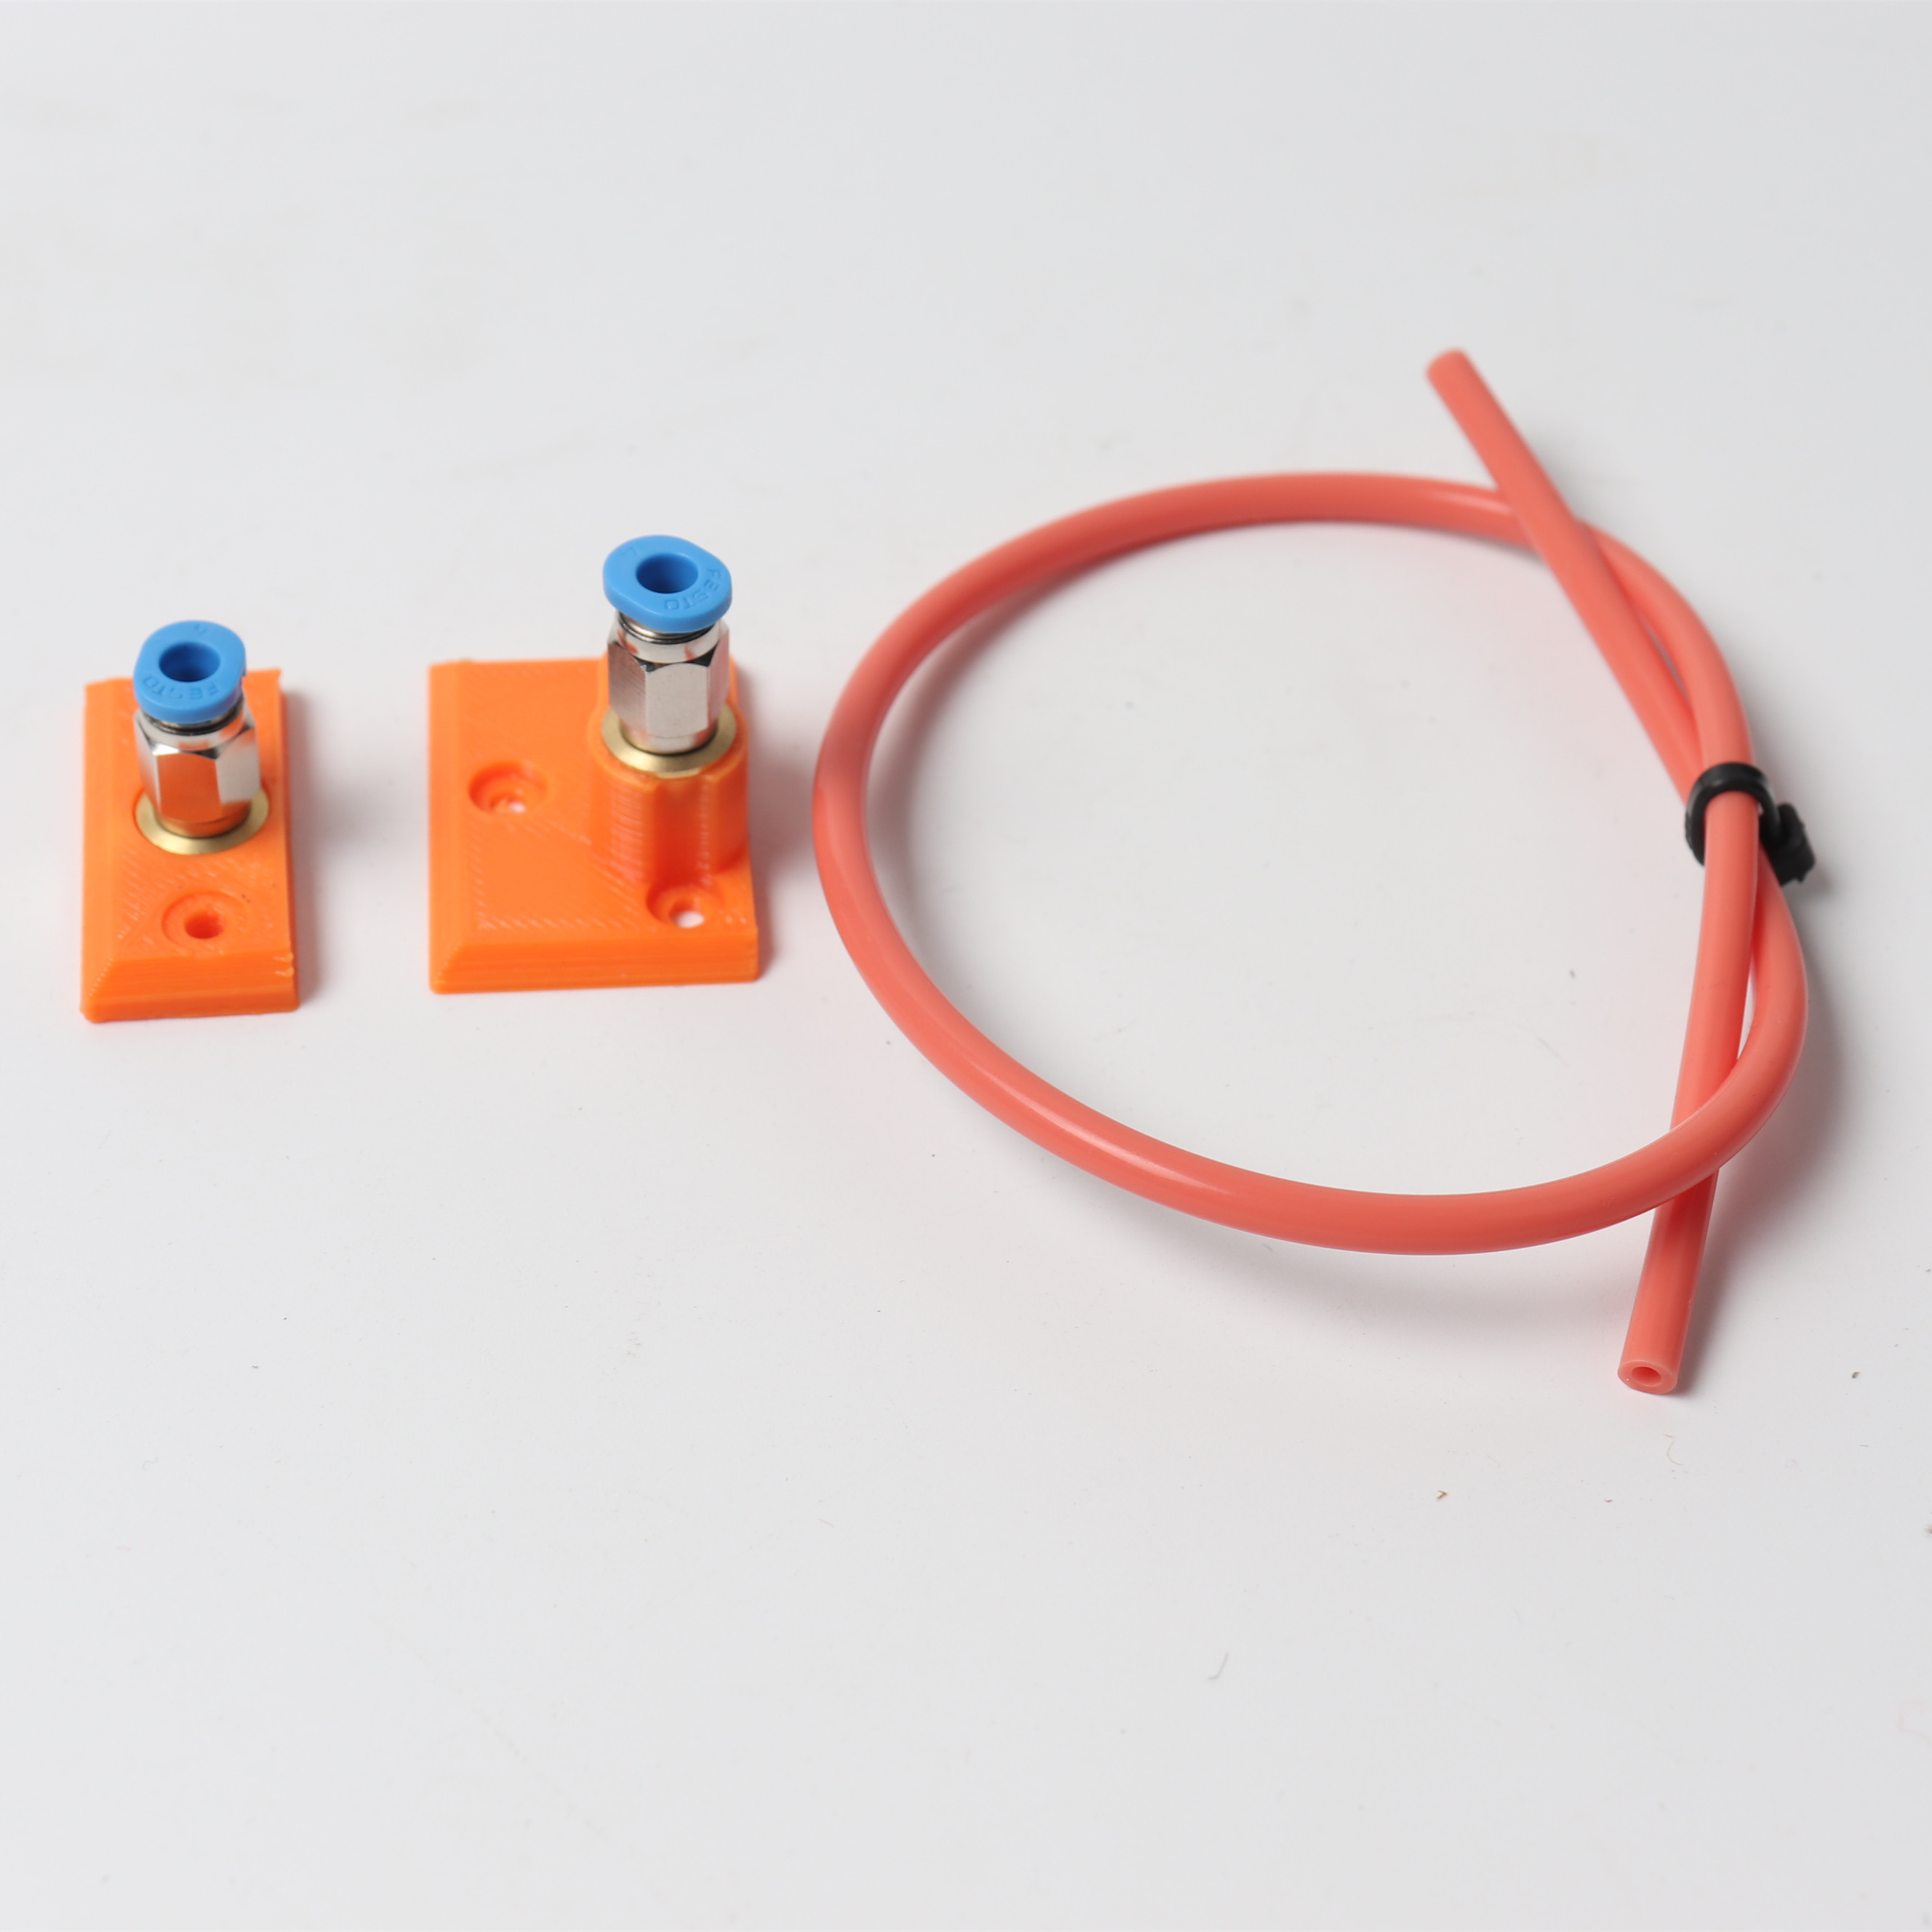 Prusa I3 MK2.5/MK3 Multi Materials 2.0 Upgrade Kit Pneumatic Fittings, 2*4 PTFE Bowden Tube Set